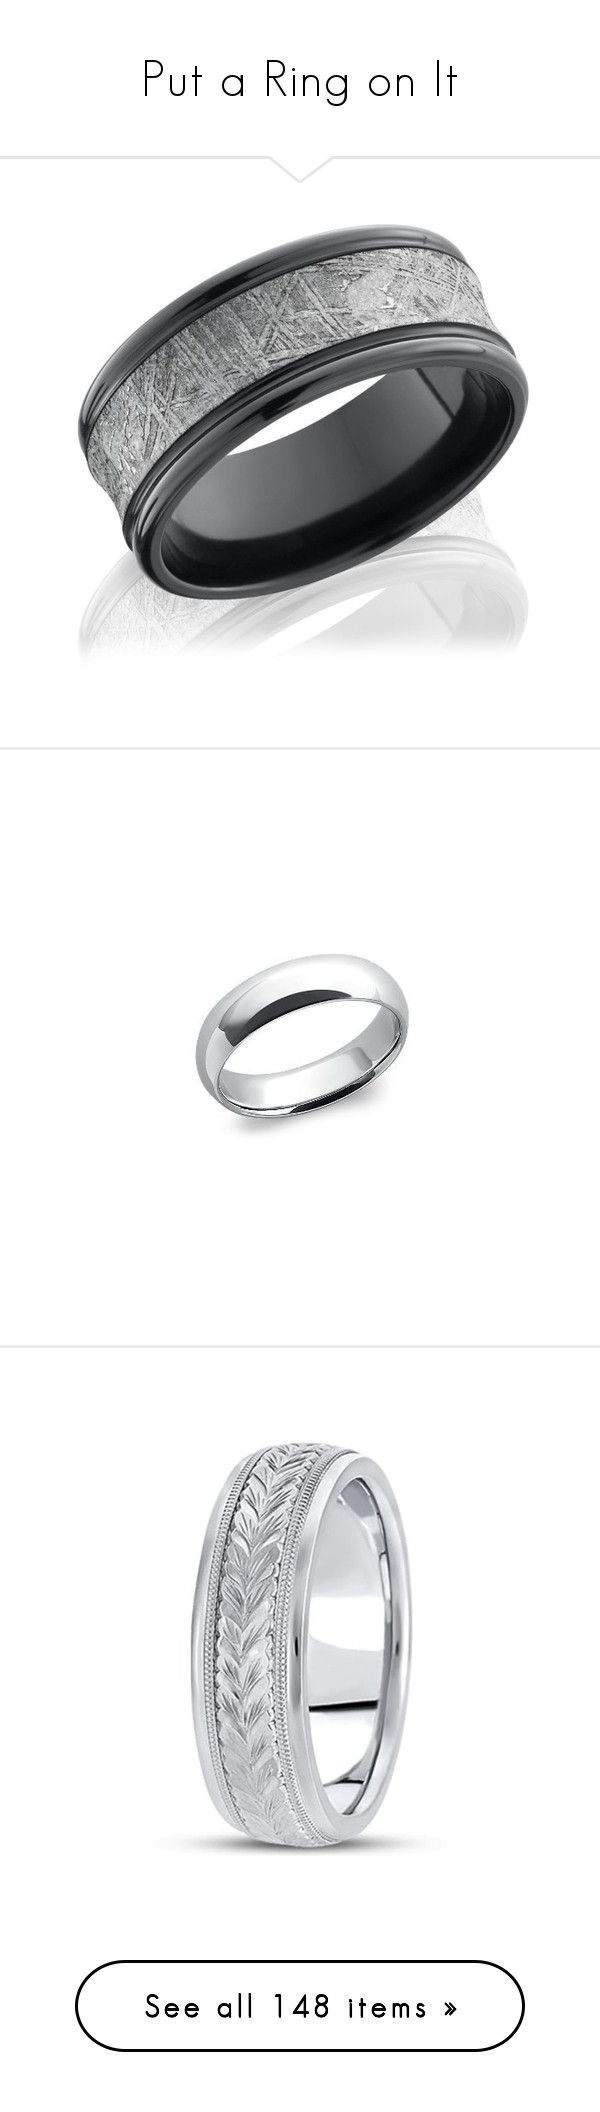 """""""Put a Ring on It"""" by xochrissixo ❤ liked on Polyvore featuring men's fashion, men's jewelry, men's rings, mens band rings, mens wedding rings, mens rings, mens diamond band wedding ring, mens platinum rings, mens platinum wedding rings and mens watches jewelry"""